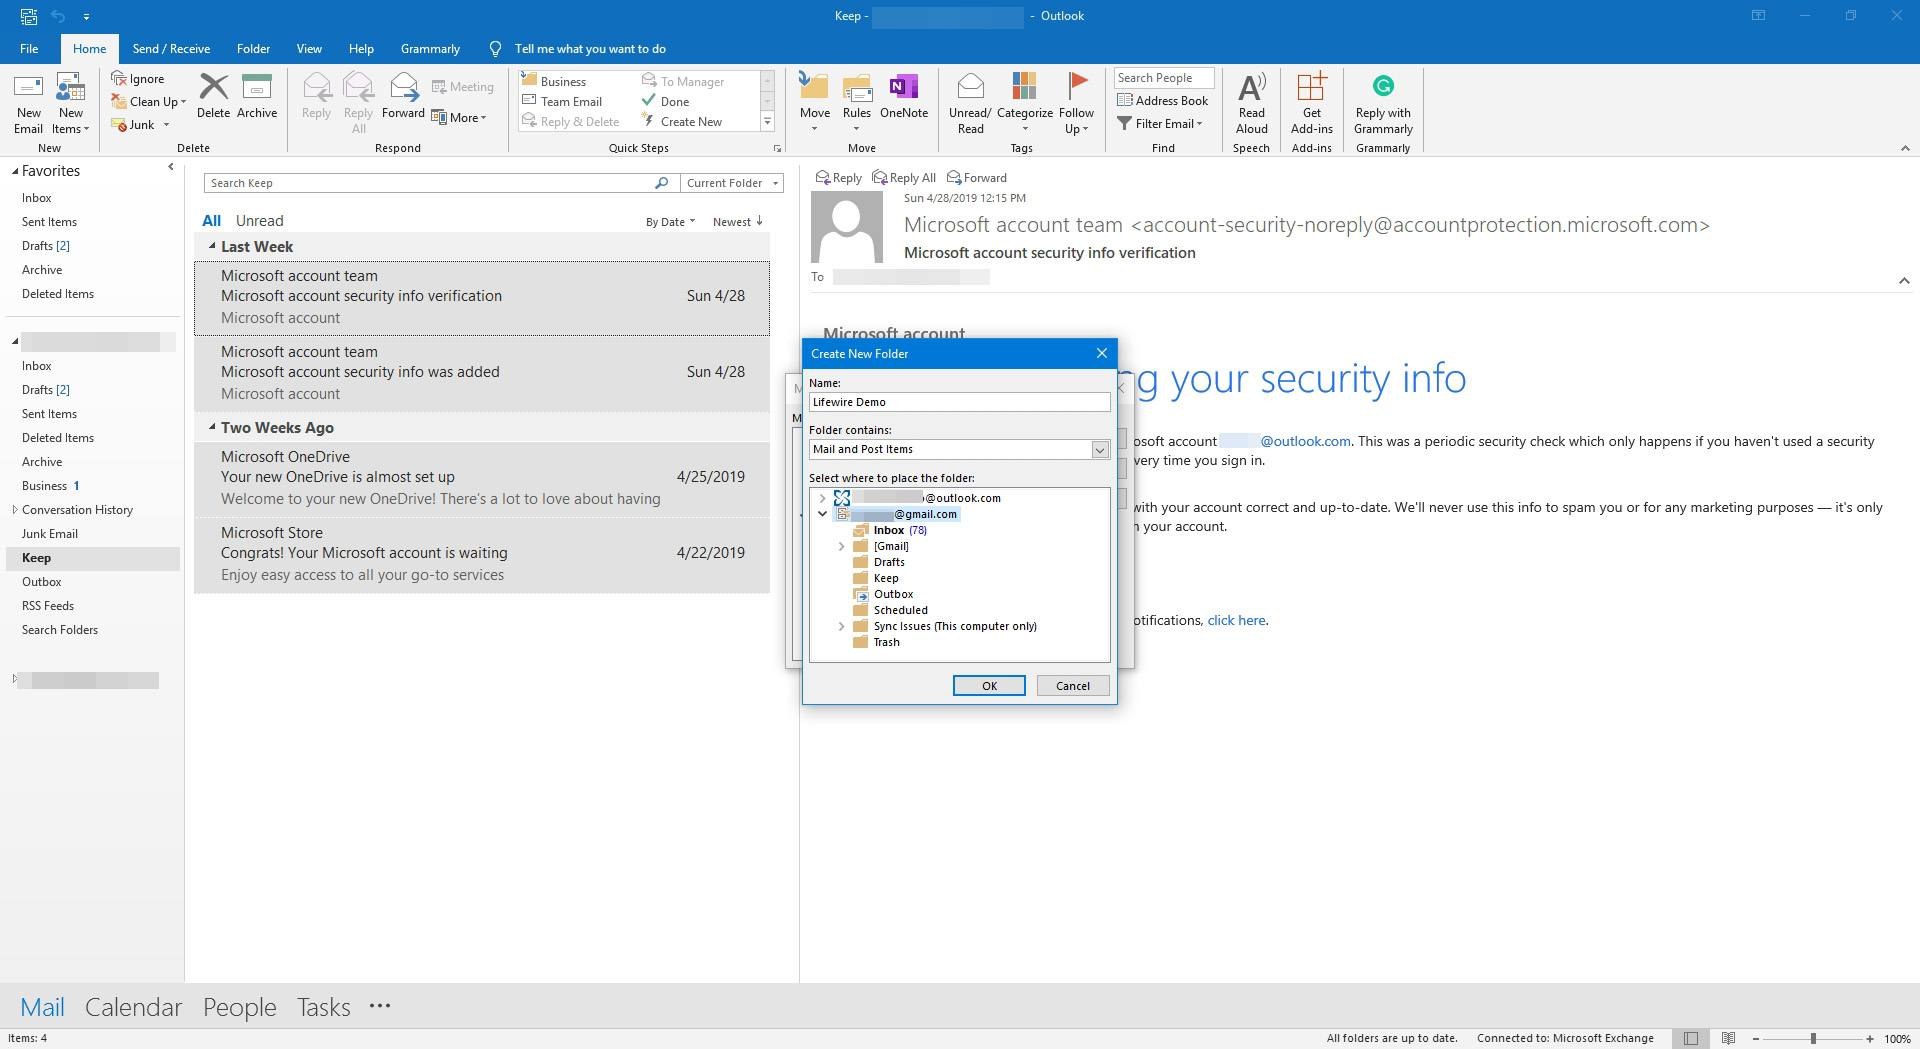 How To Export Emails From Outlook